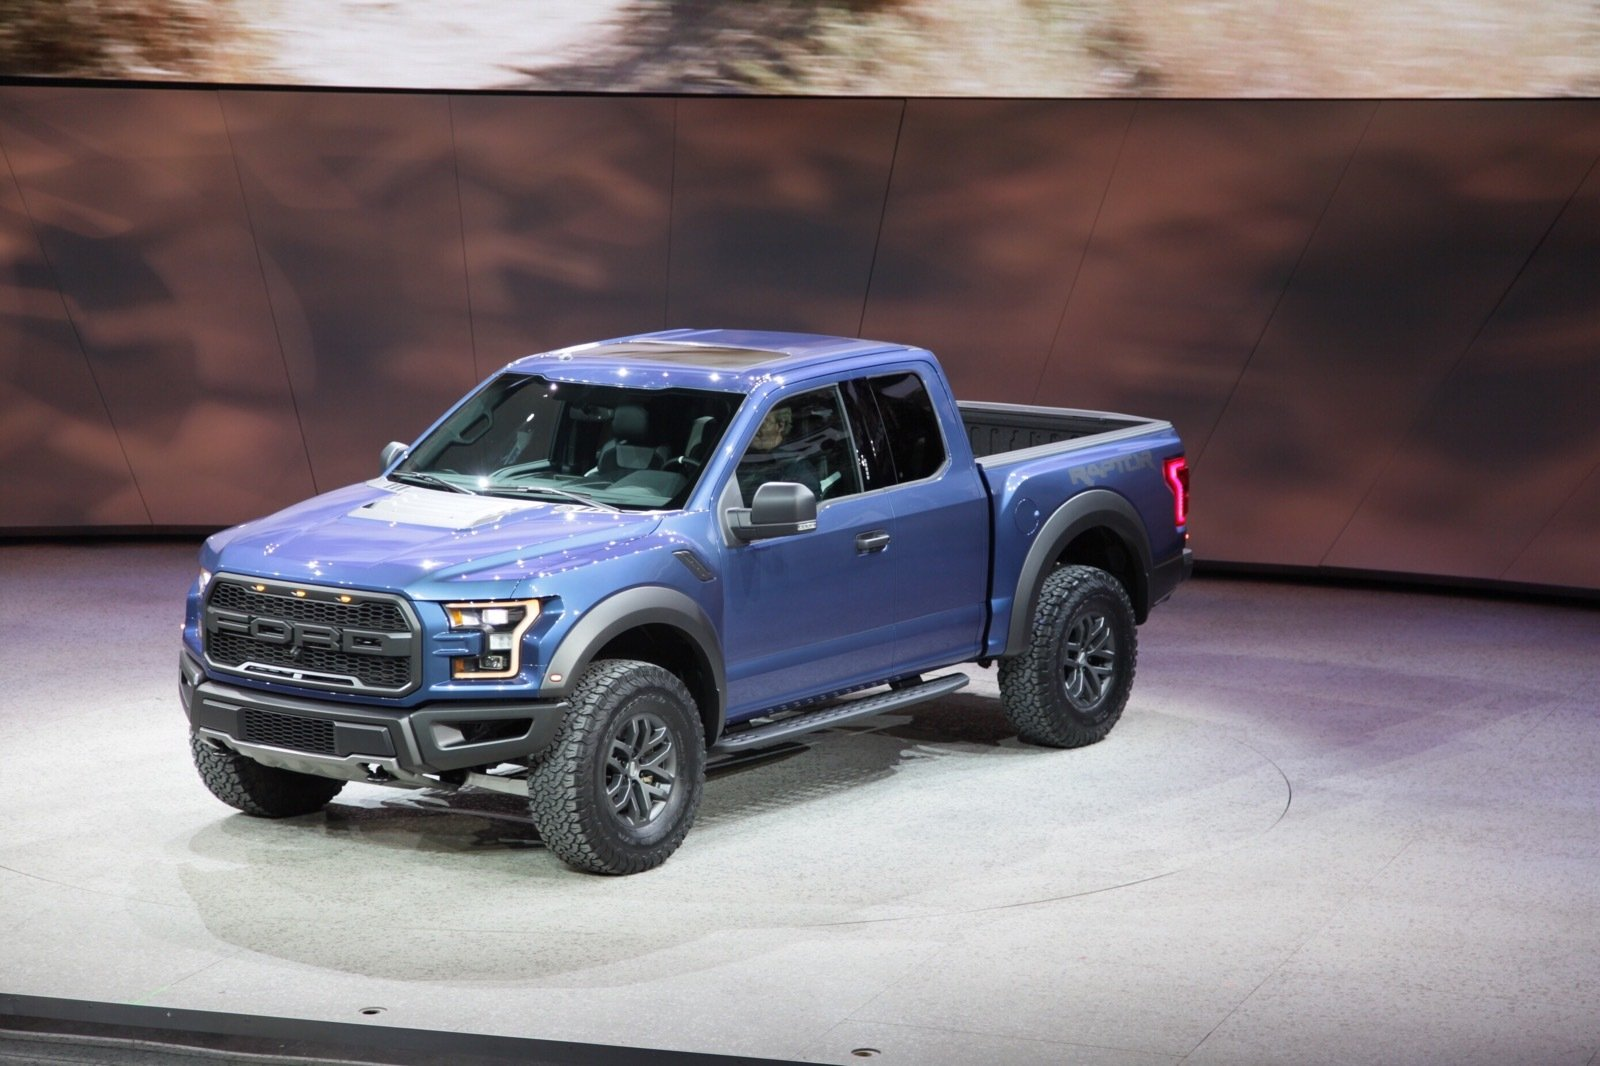 2017 ford f 150 raptor picture 610307 truck review top speed. Black Bedroom Furniture Sets. Home Design Ideas